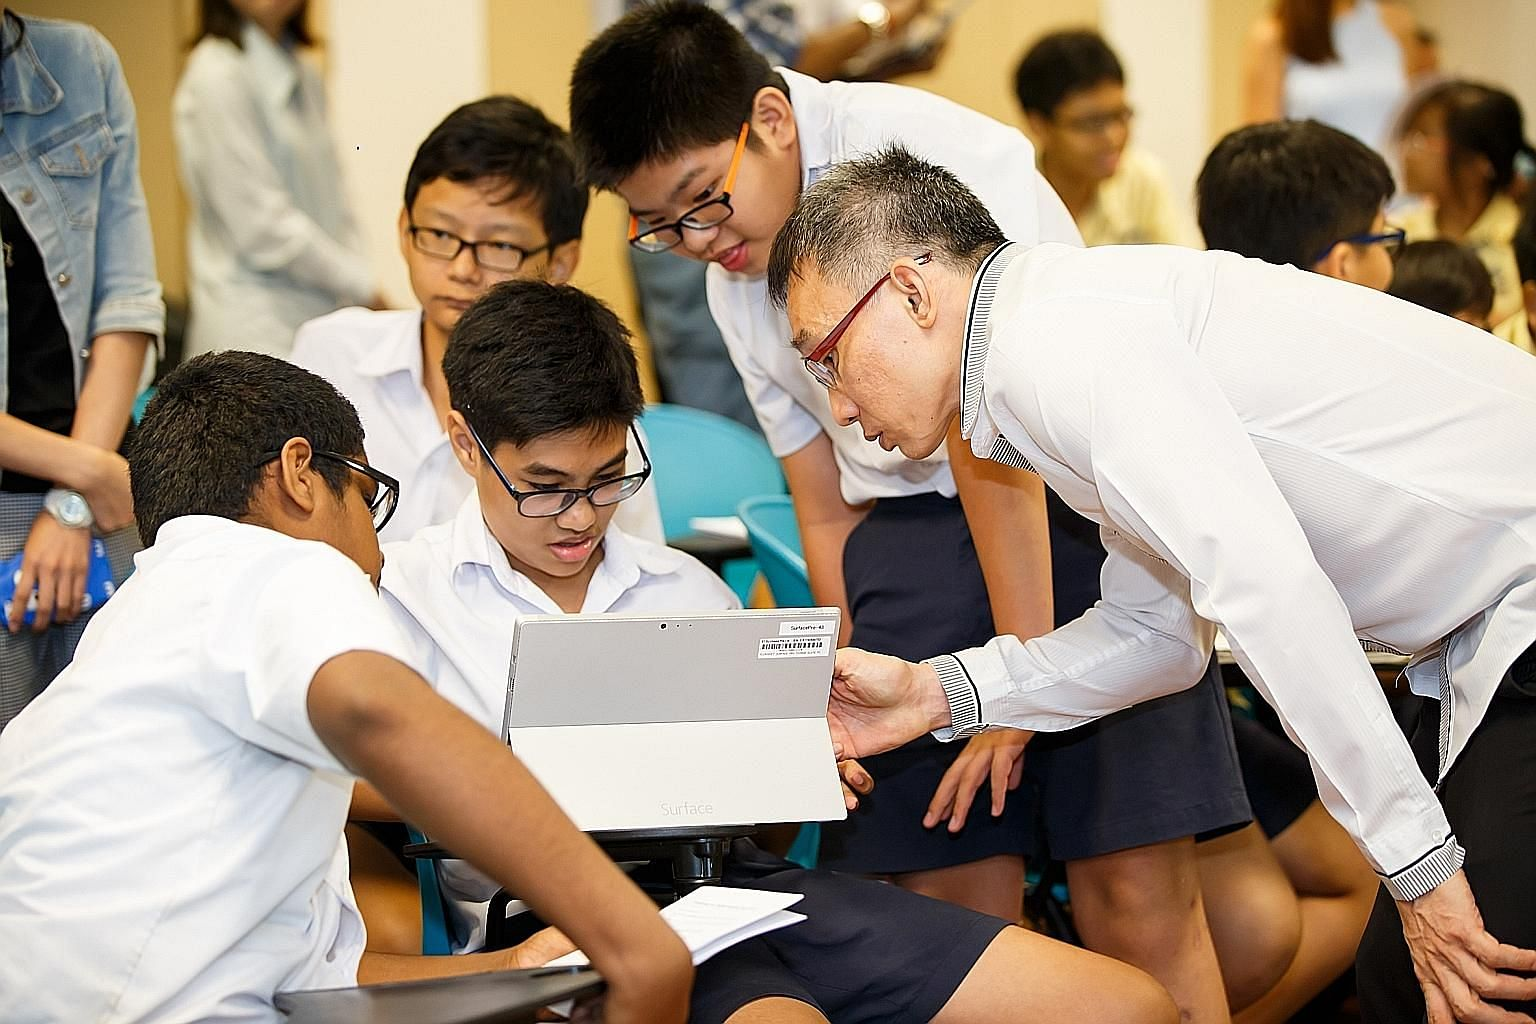 Online safety expert Poh Yeang Cherng (right) conducting a training session for students during the National Cyber Wellness Advocacy Challenge, an annual cyber wellness competition organised by Crescent Girls' School for primary and secondary school